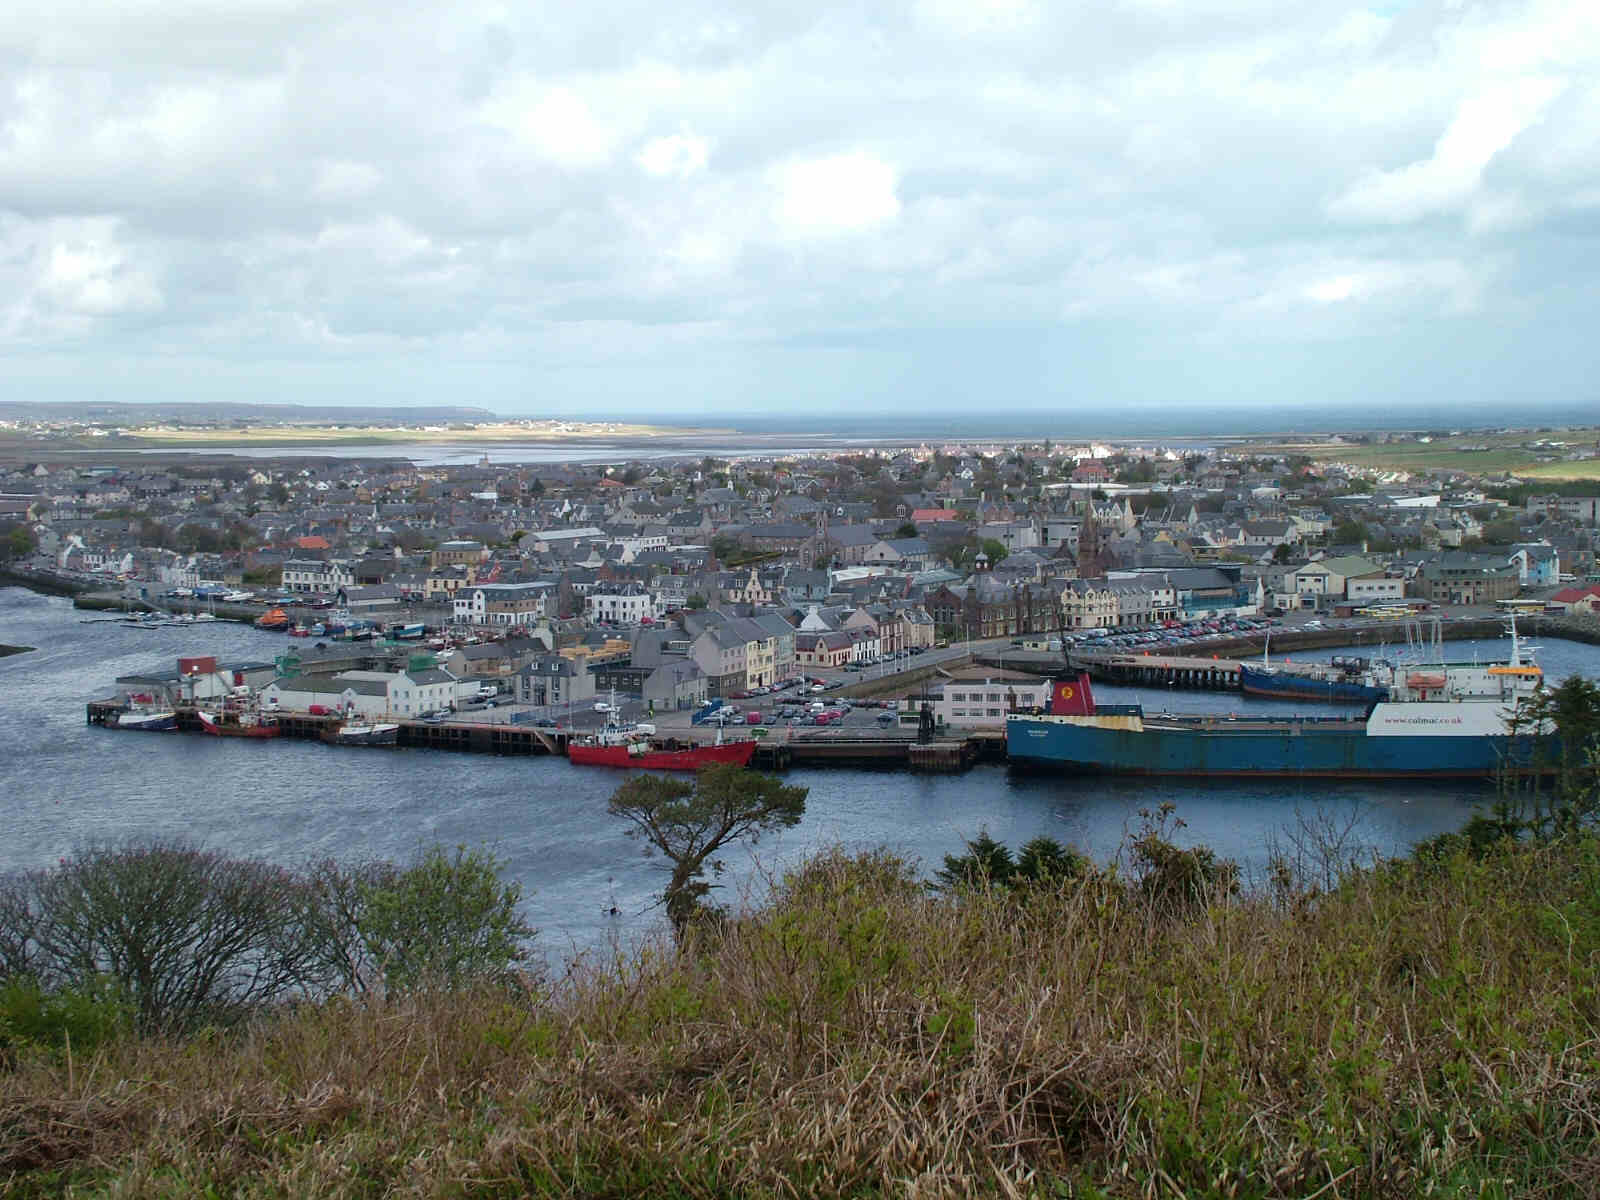 View of Stornoway; MV Muirneag to the right